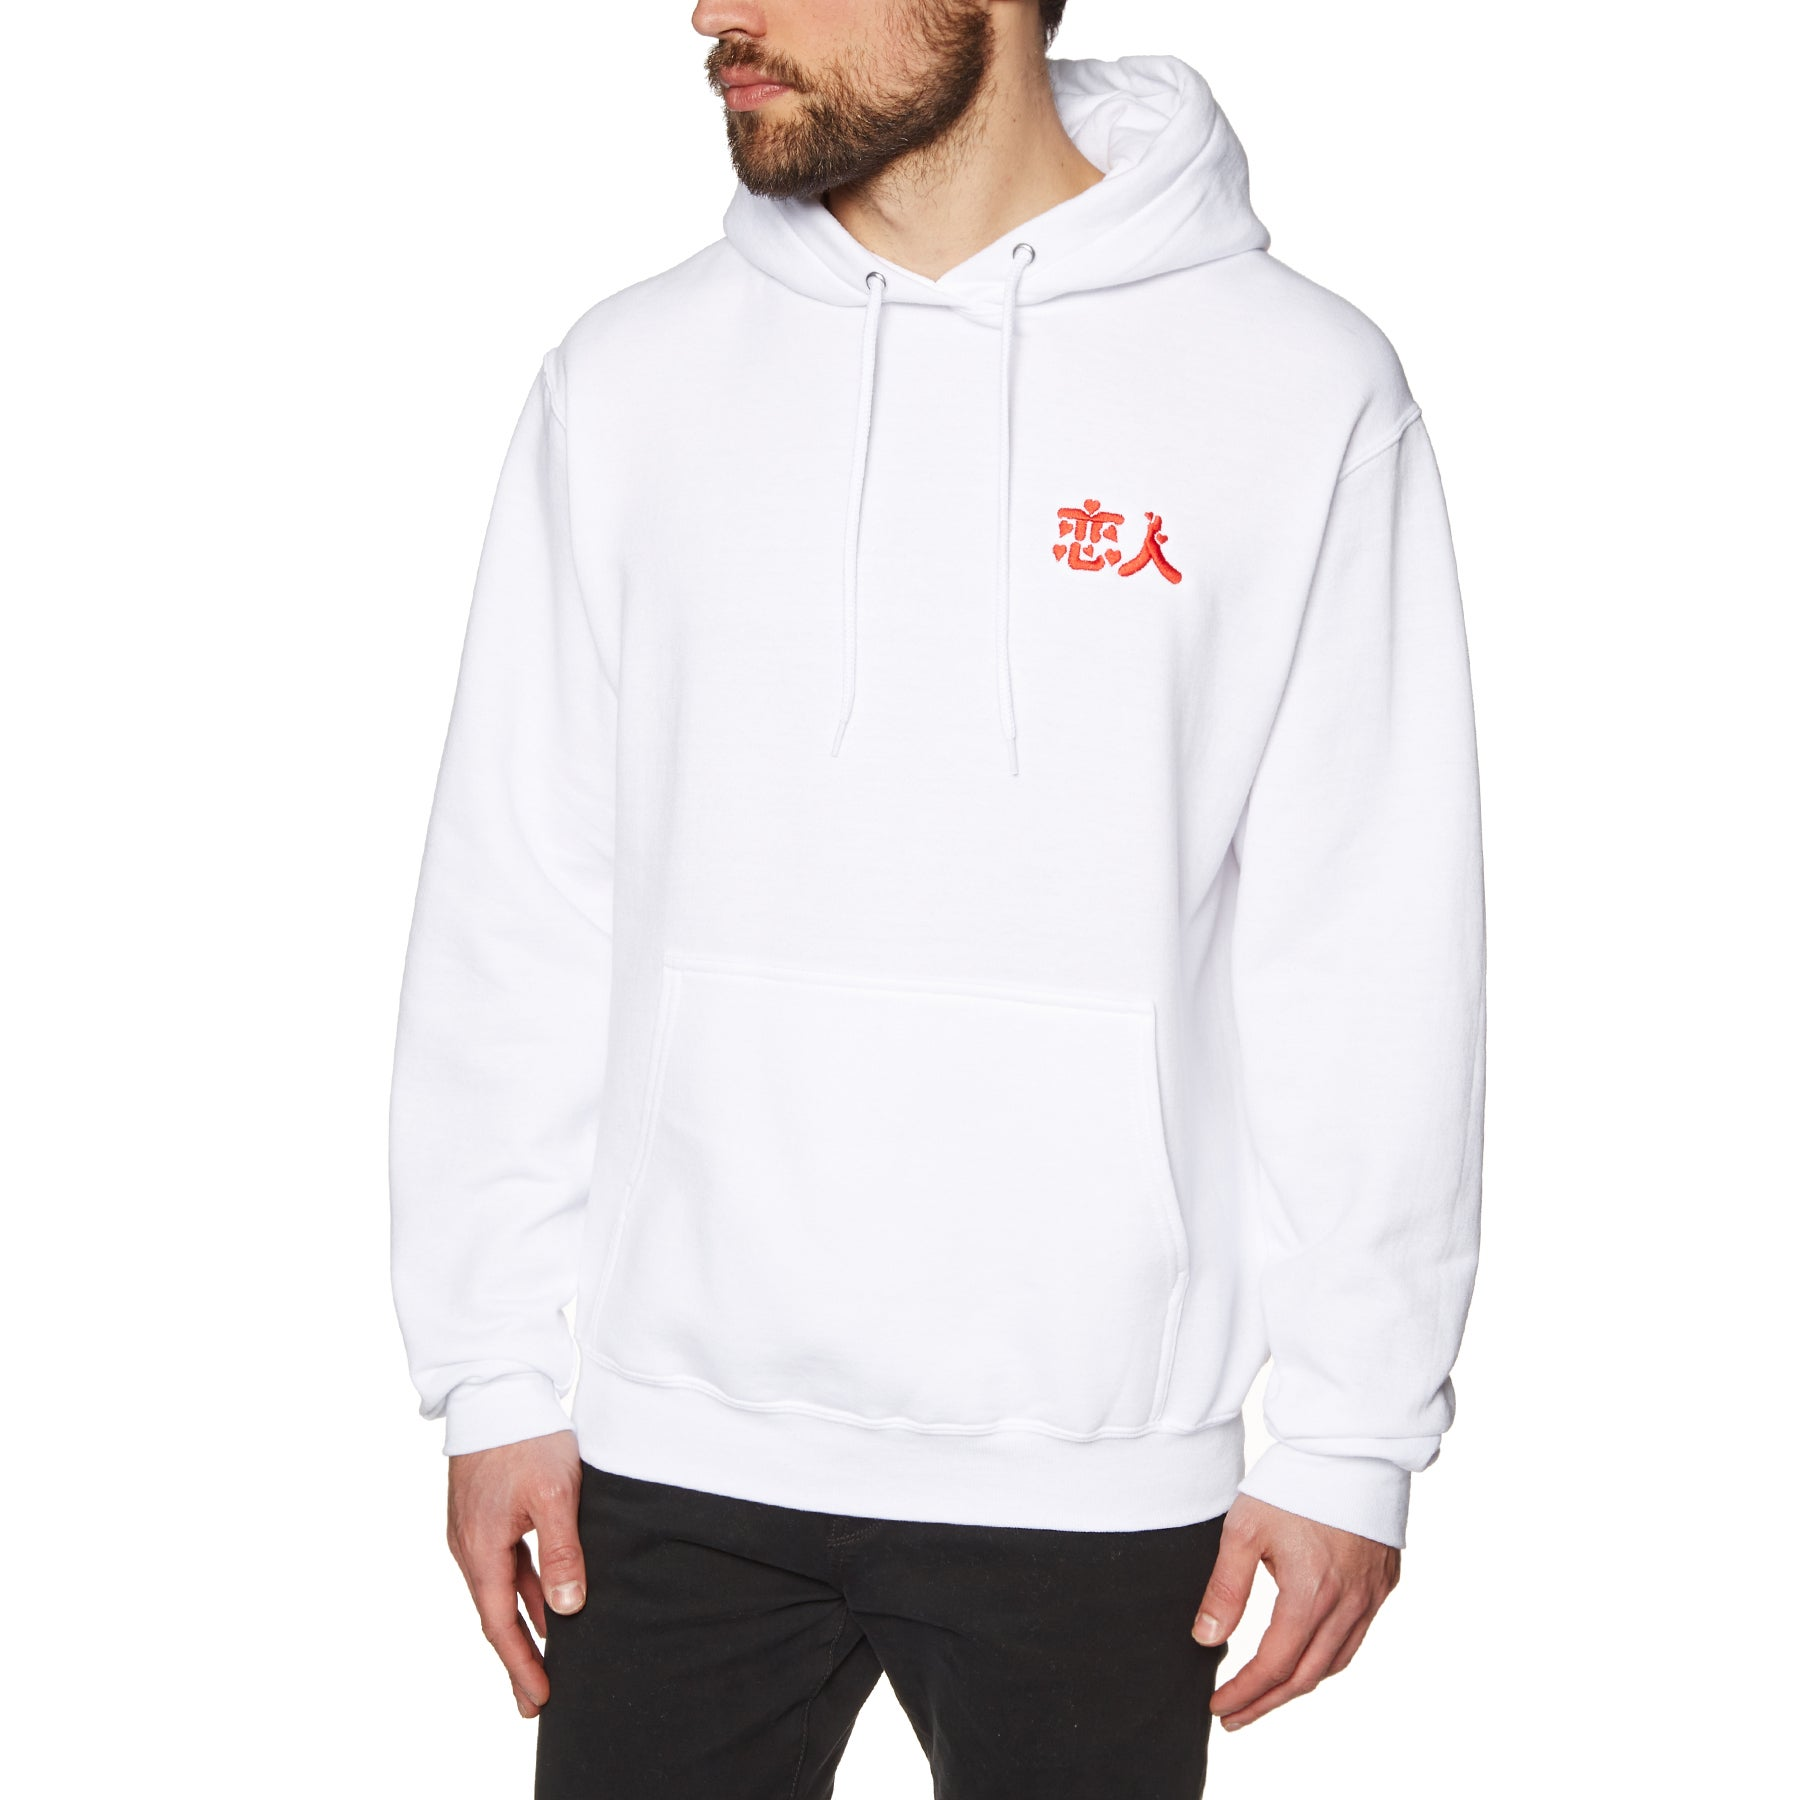 Chrystie Lover Pullover Hoody